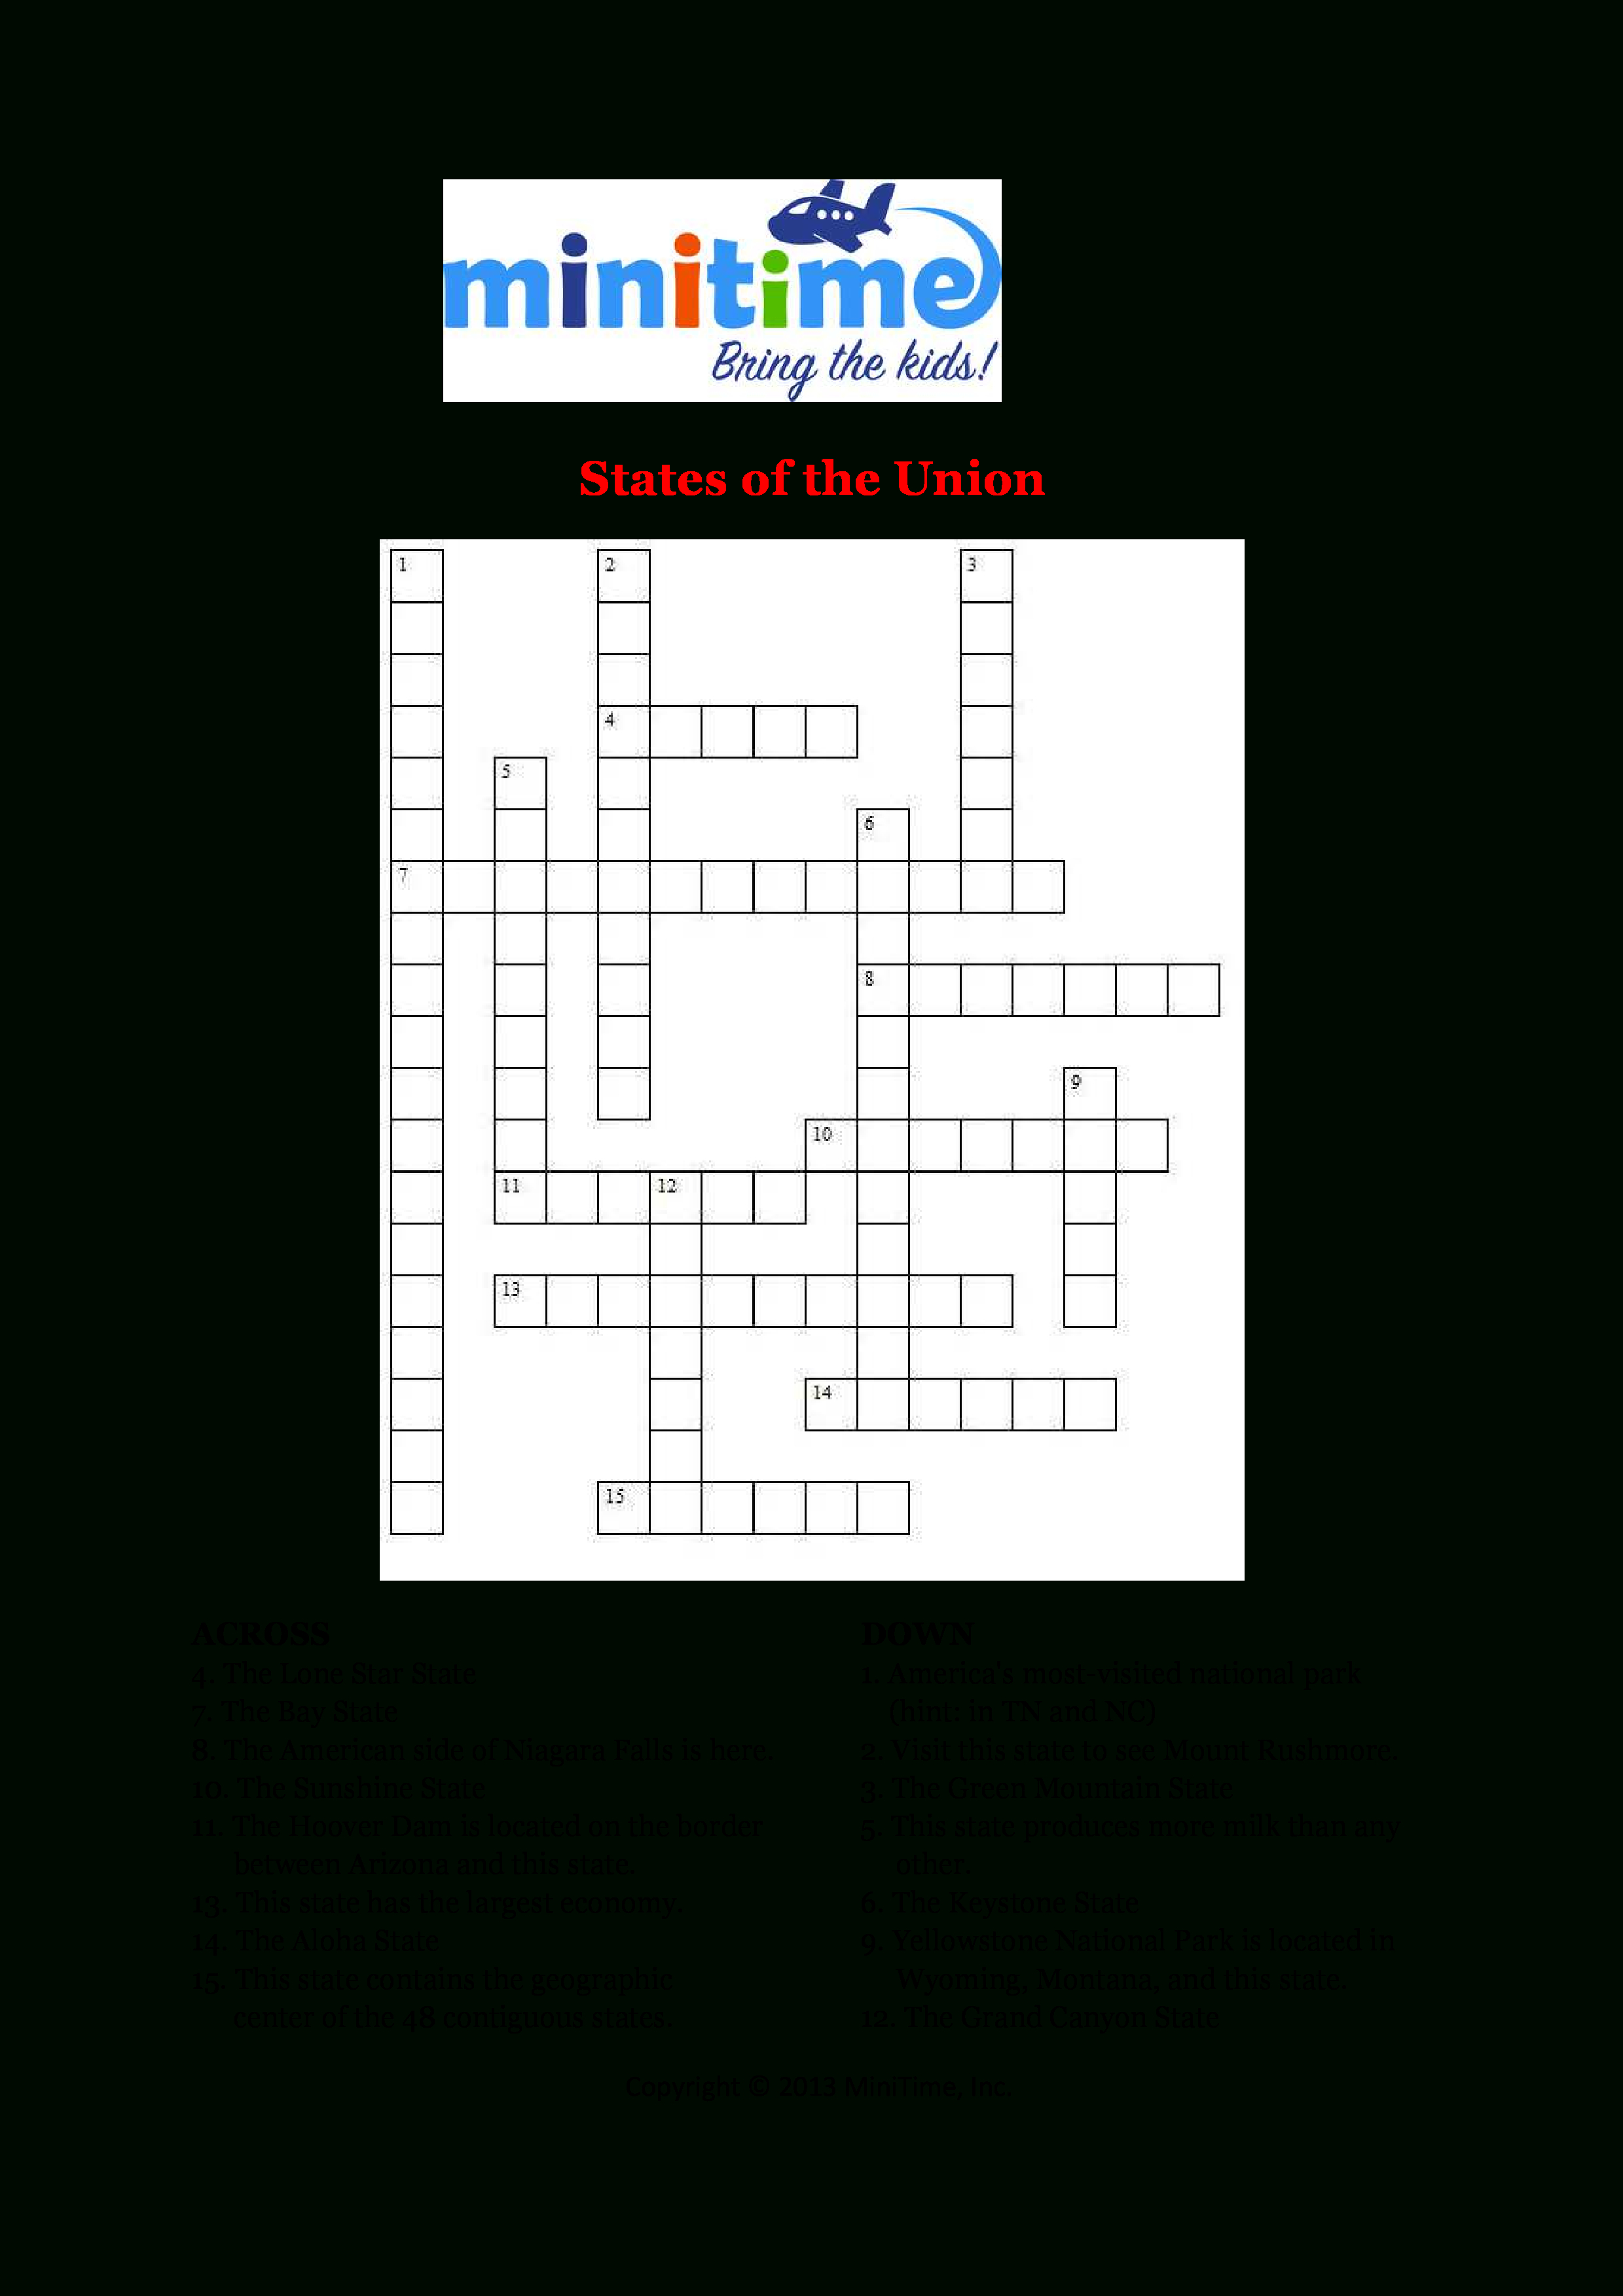 Us States Fun Facts Crossword Puzzles | Free Printable Travel - Printable Crossword Puzzles Travel